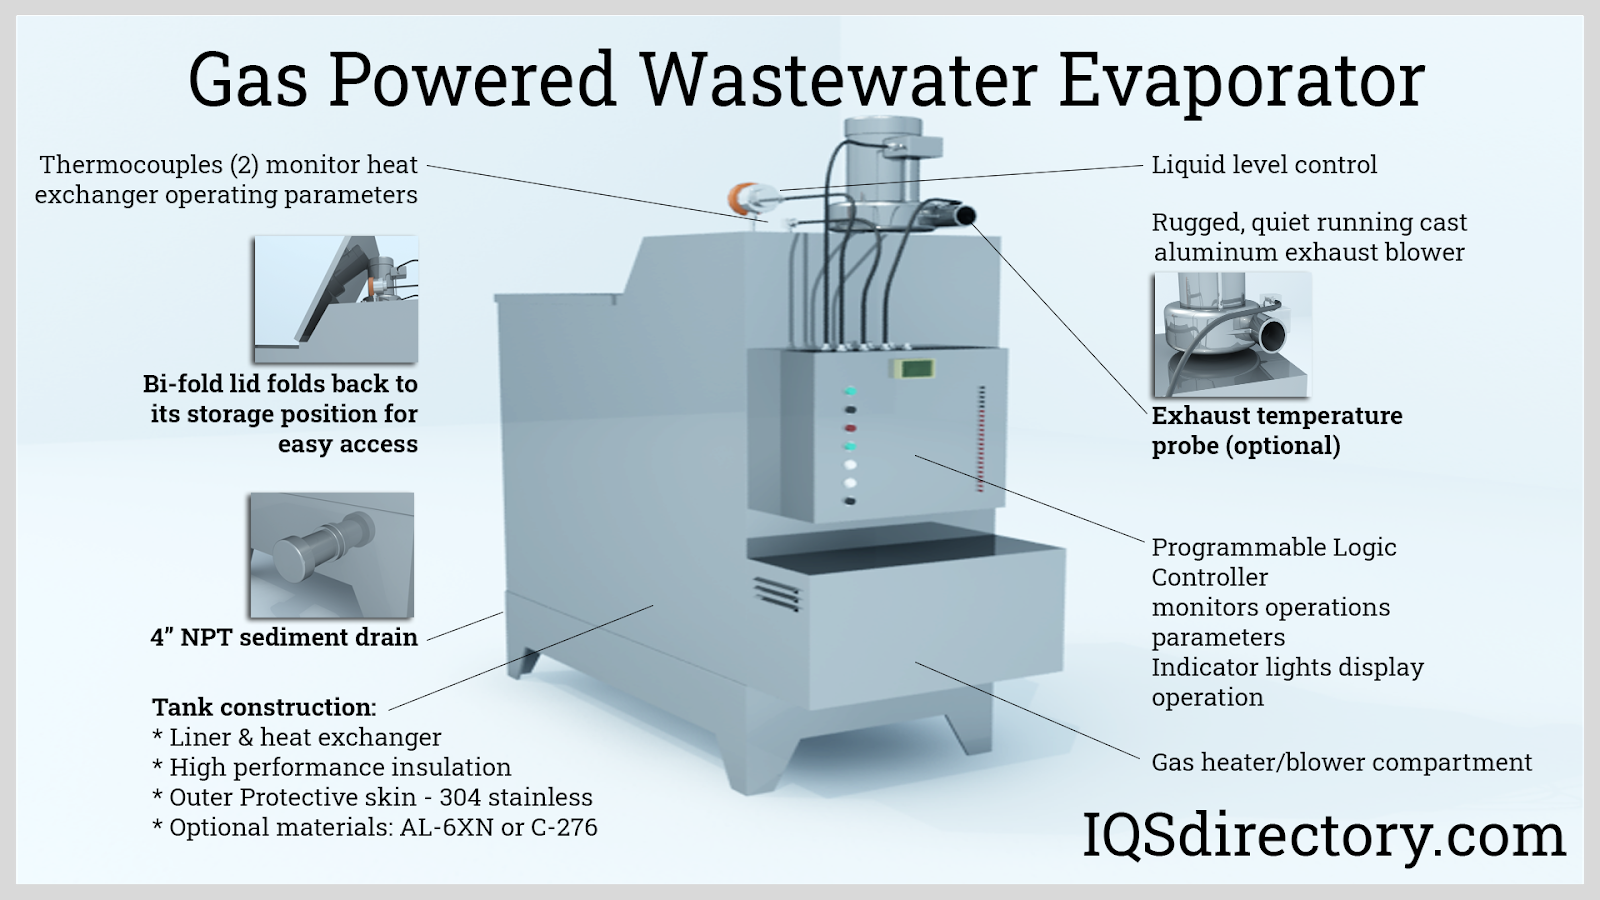 Gas Powered Wastewater Evaporator